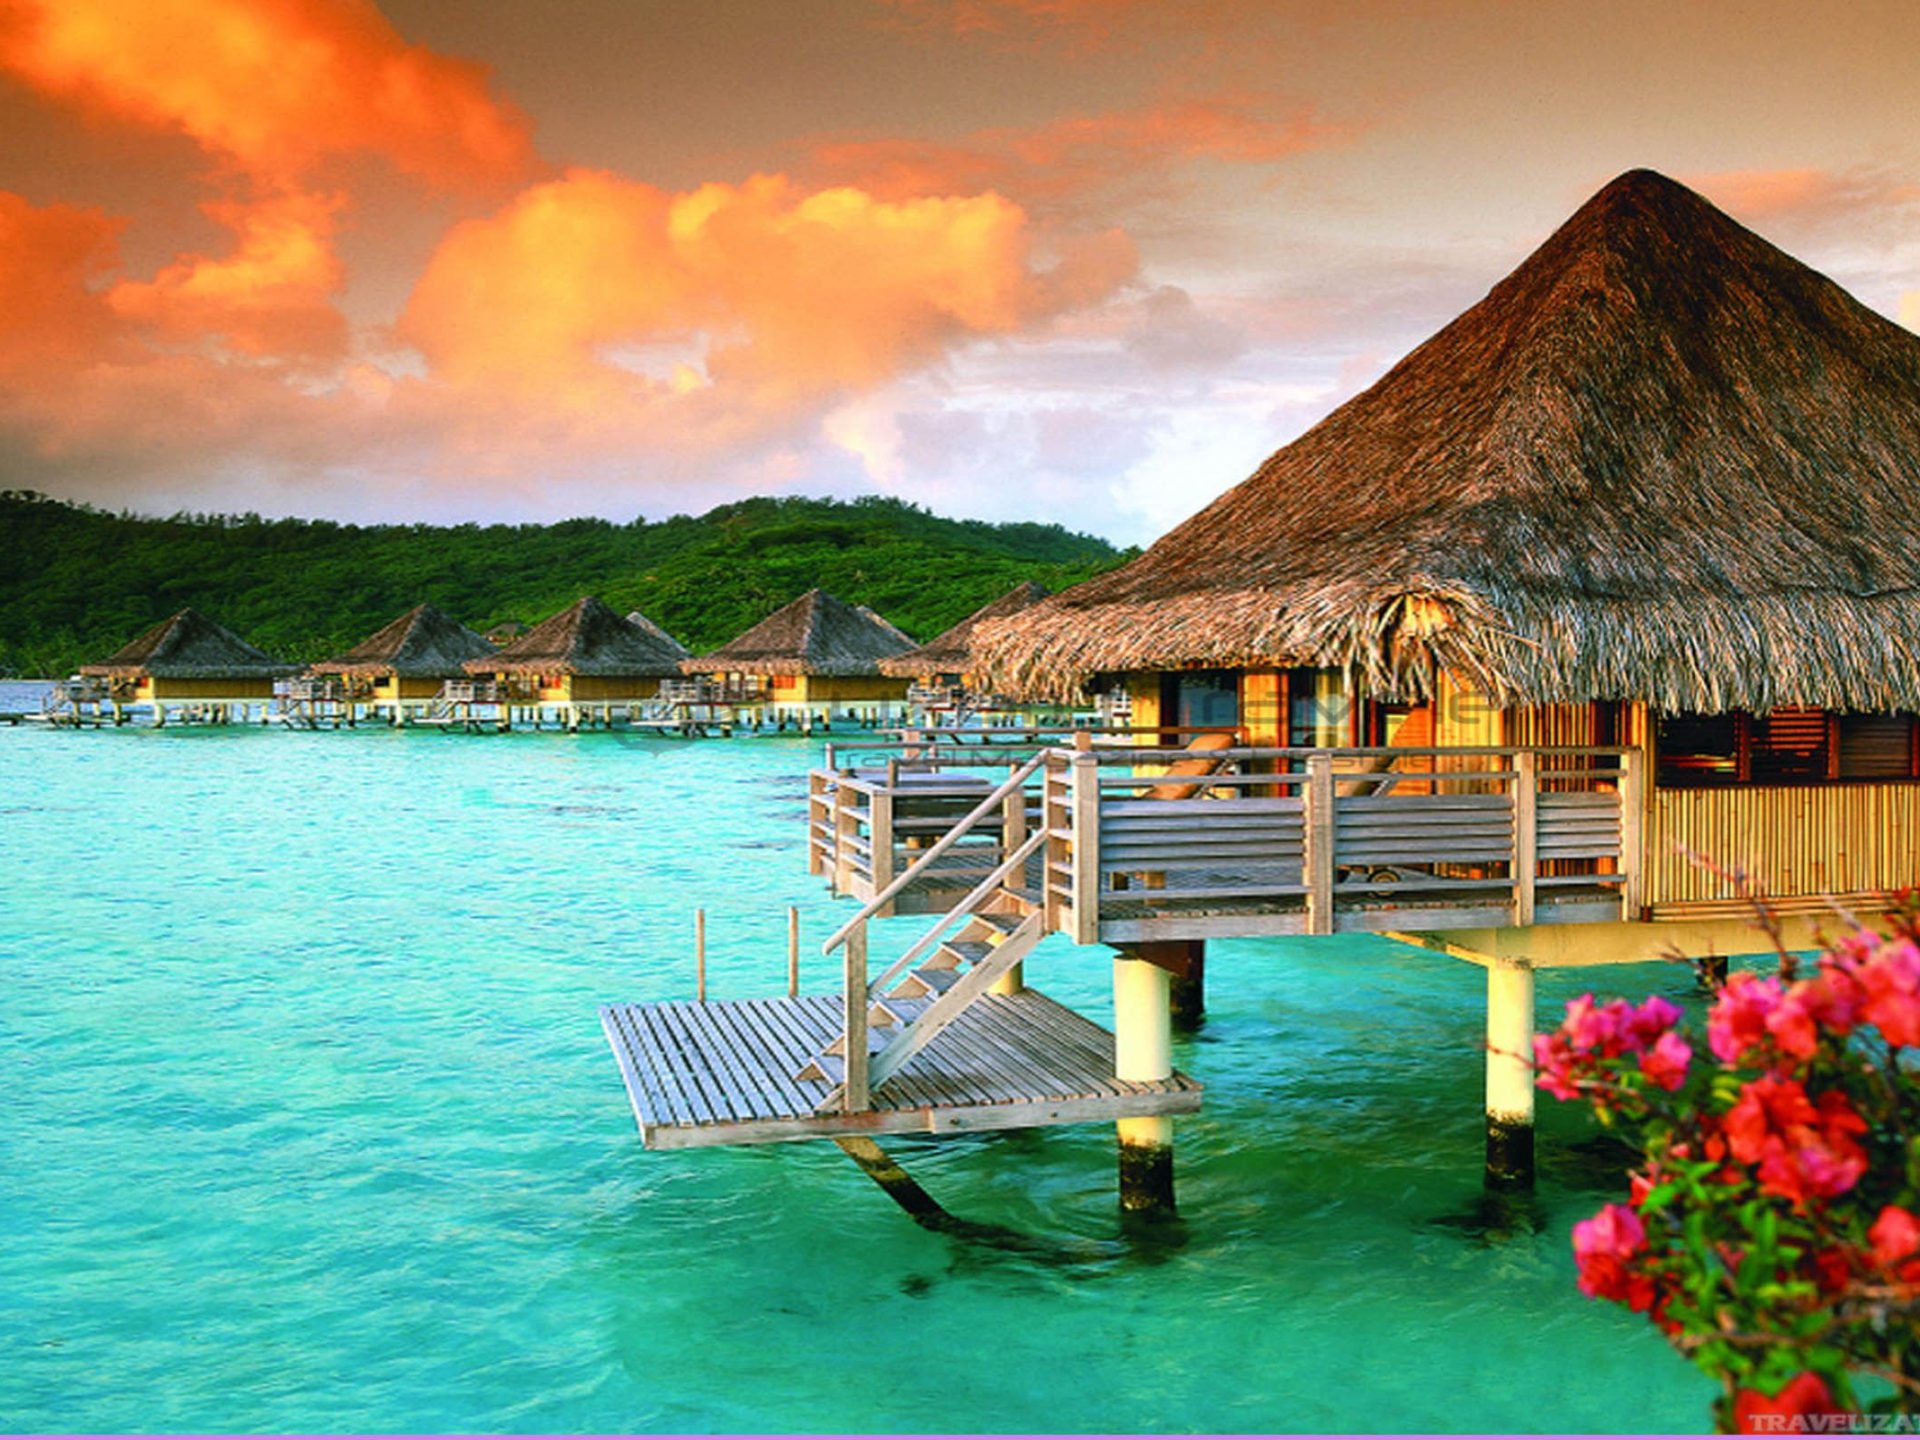 Hd Girl Wallpaper For Android Tahiti St Regis Bora Bora French Polynesia Luxury